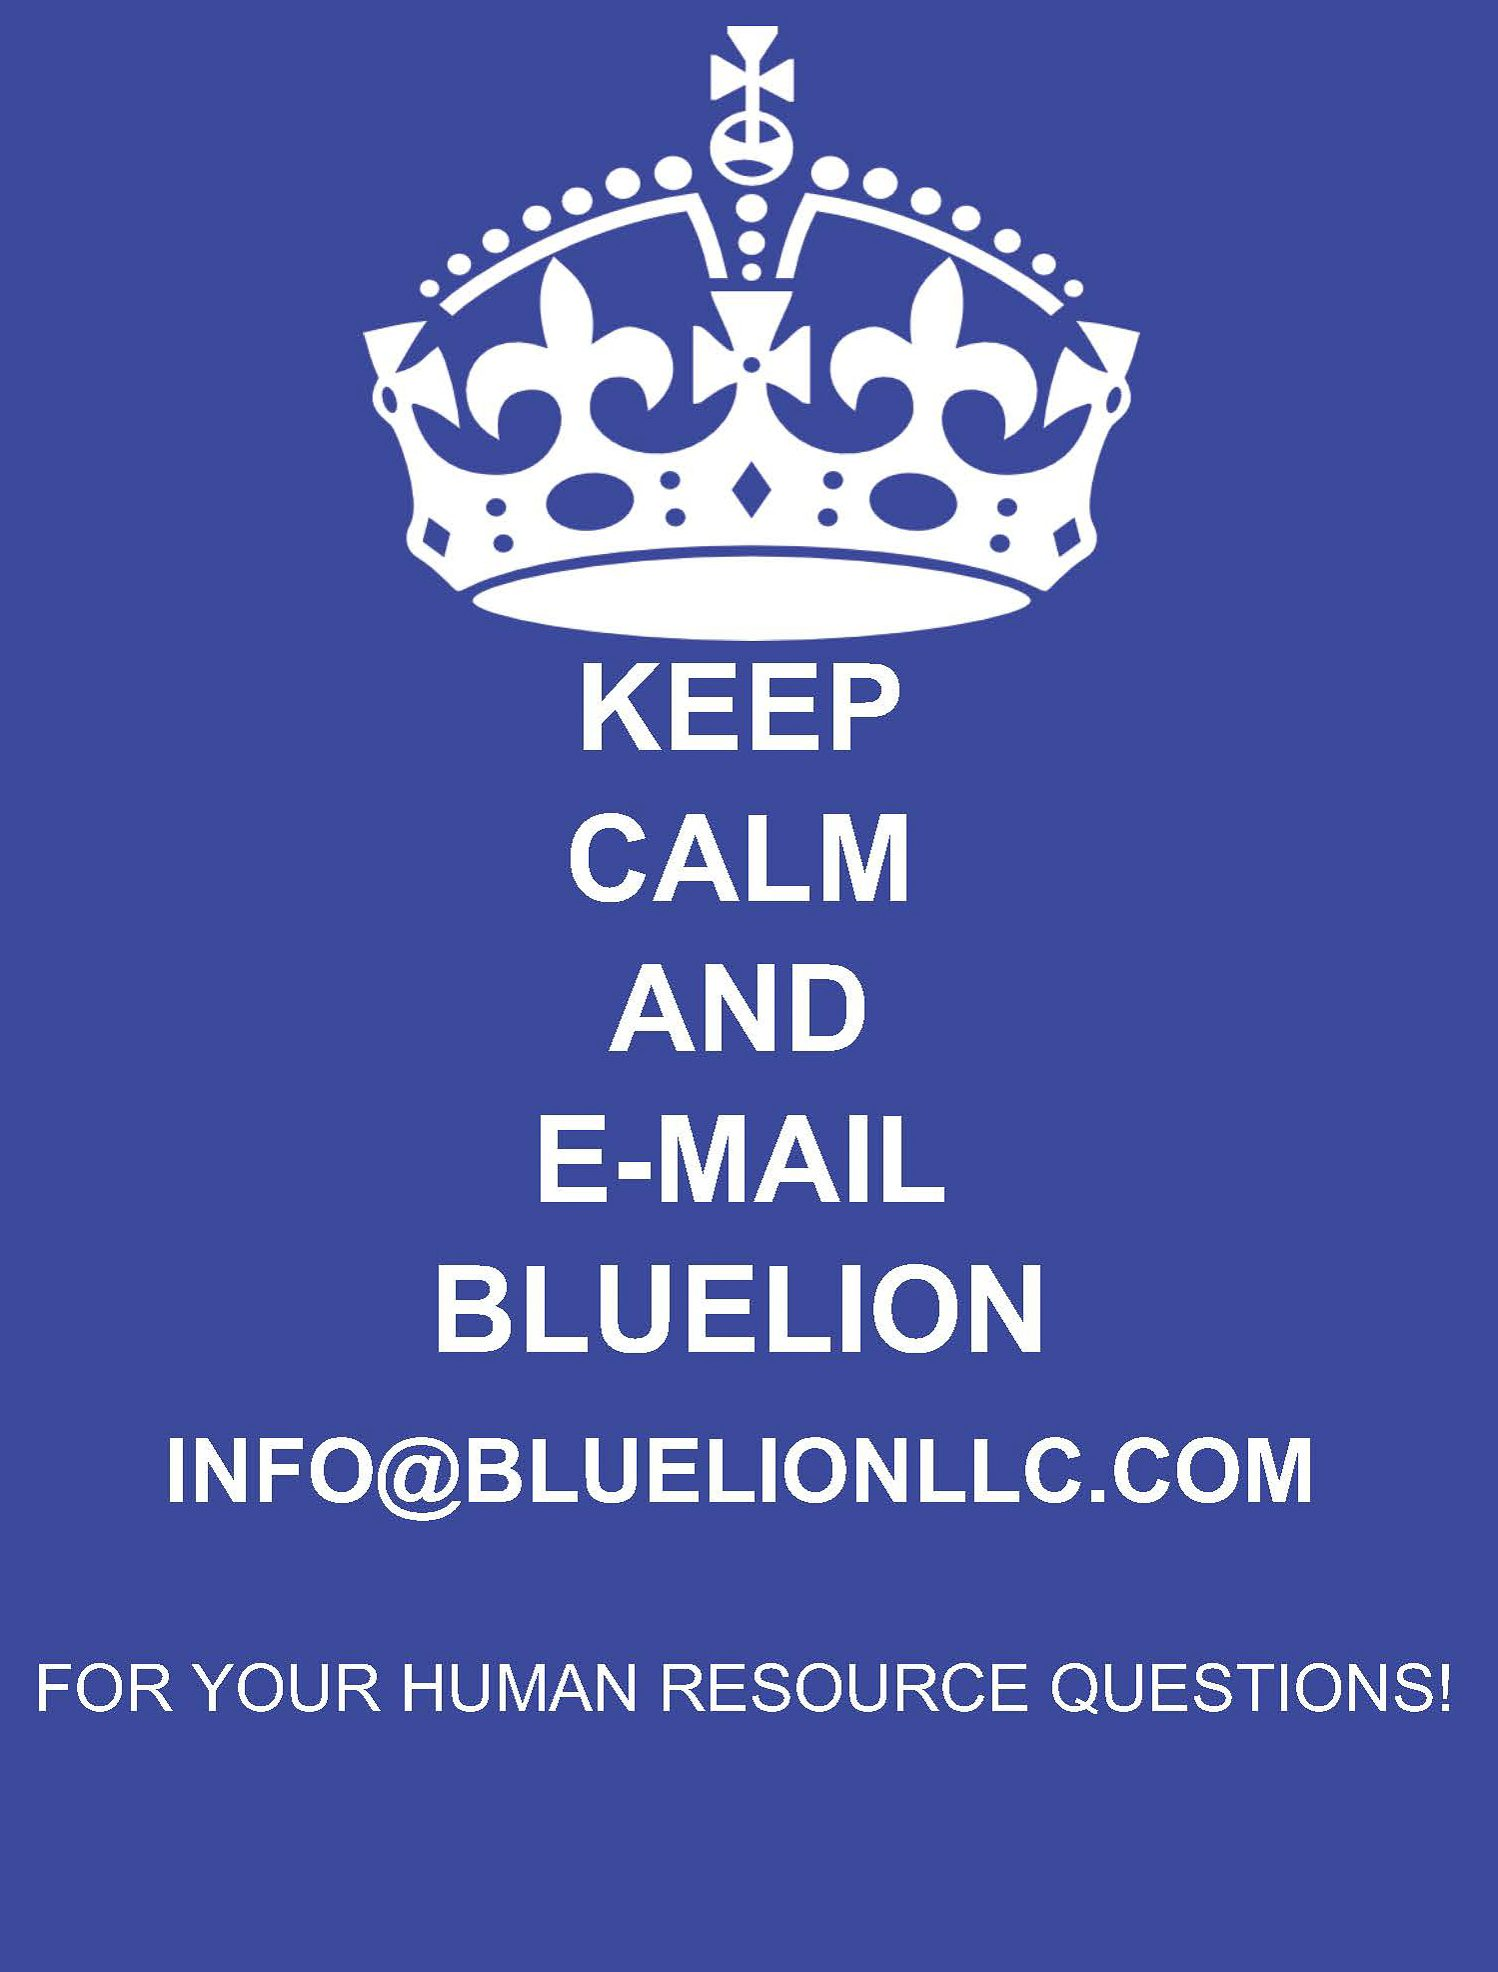 keep-calm_bluelion_3-2020-2-6417294